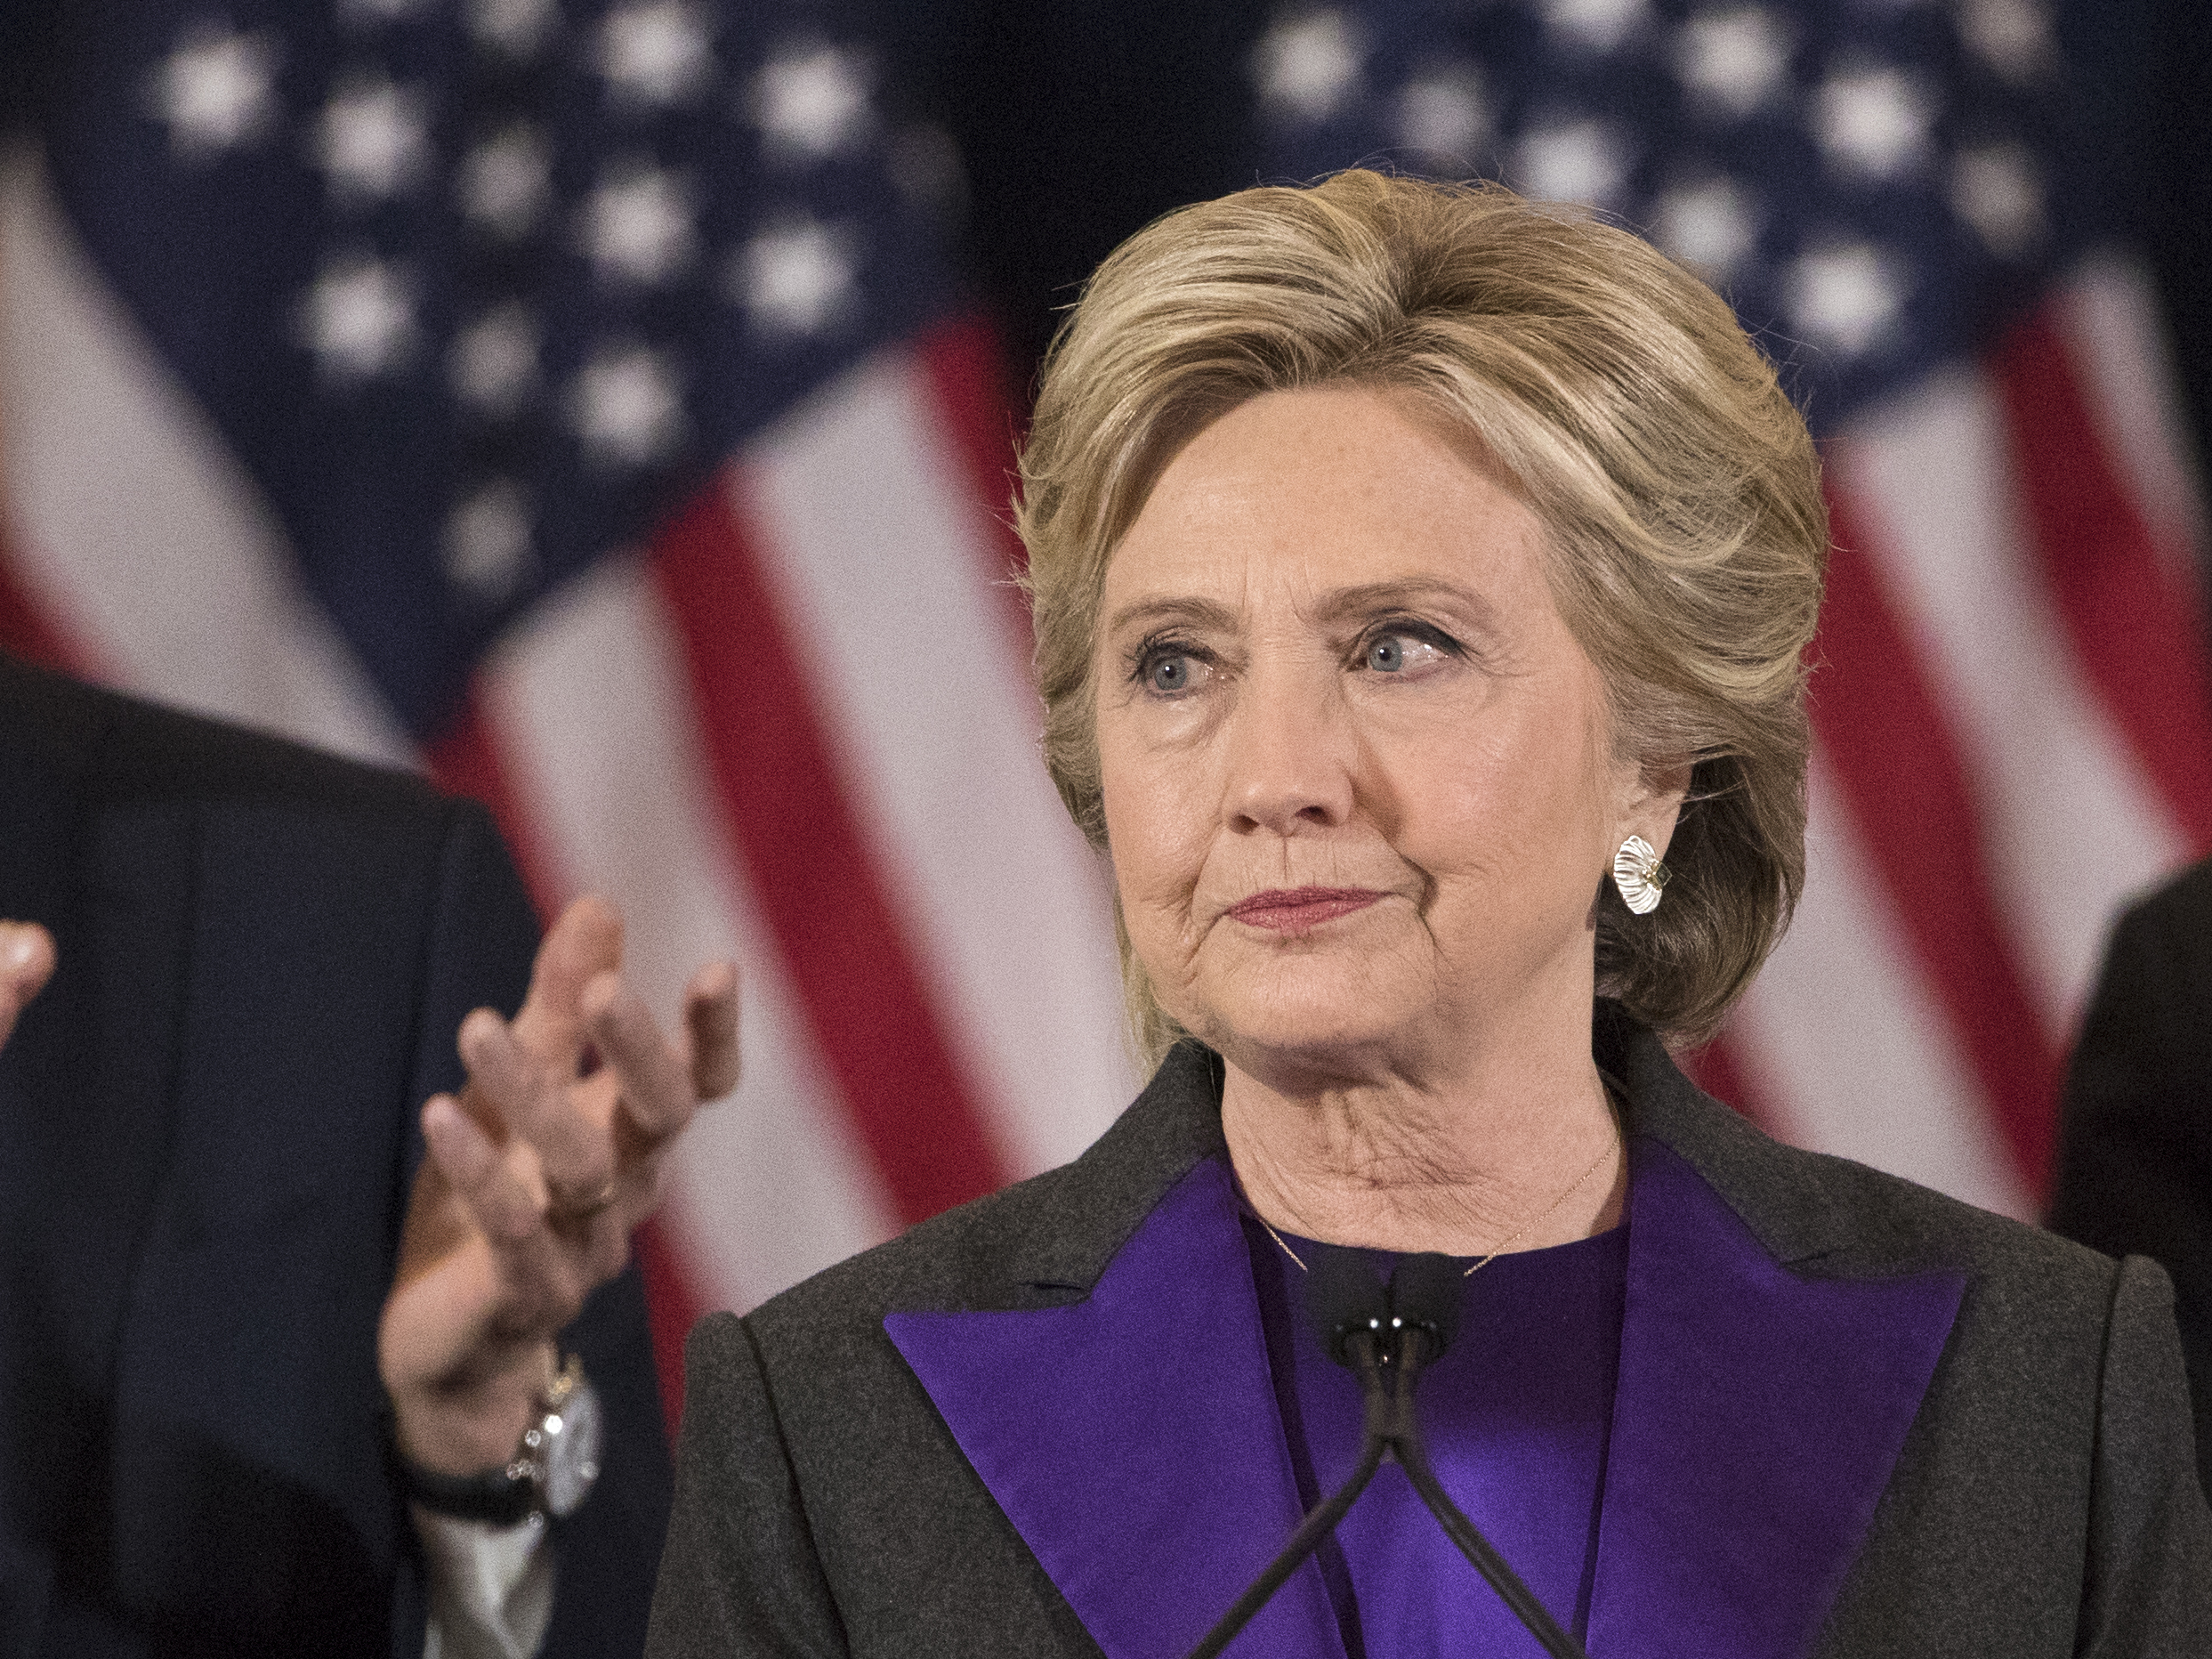 Democratic presidential candidate Hillary Clinton delivers her concession speech in New York on Nov. 9. Her campaign announced Saturday it will back recount efforts in three states. Matt Rourke/AP